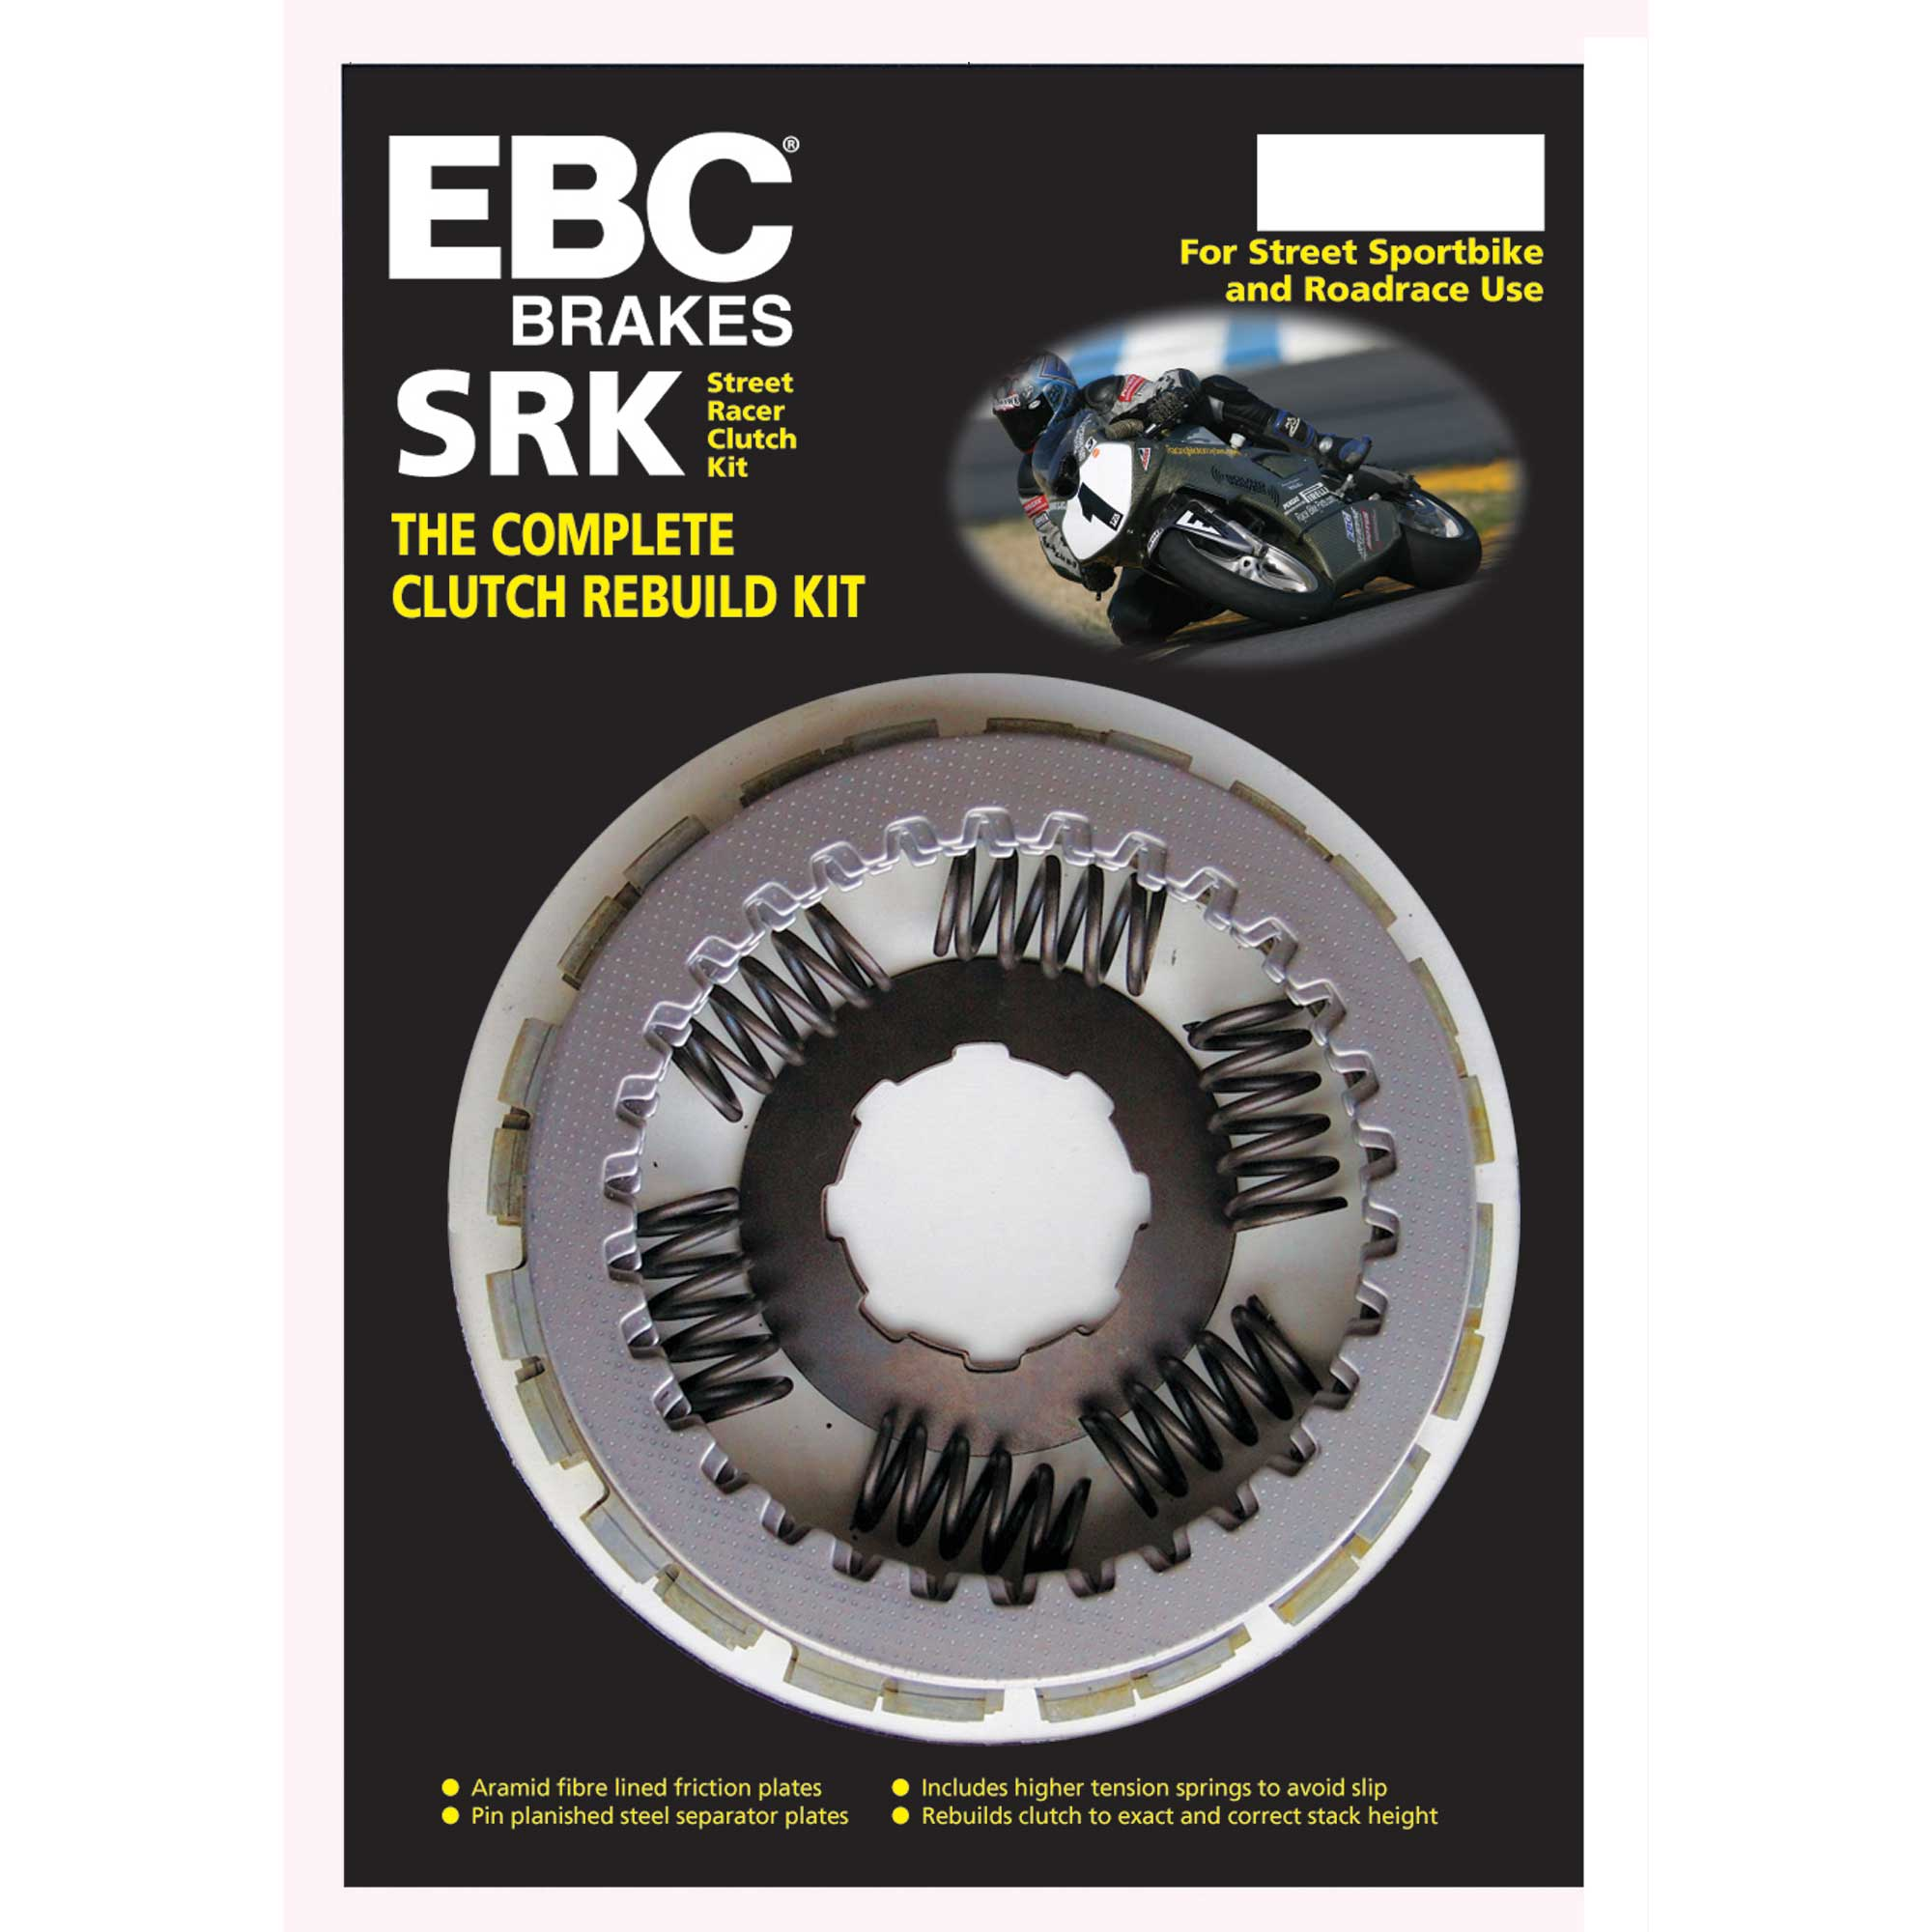 13S1 EBC SRK Complete Clutch Kit For Yamaha 2010 YZF-R6